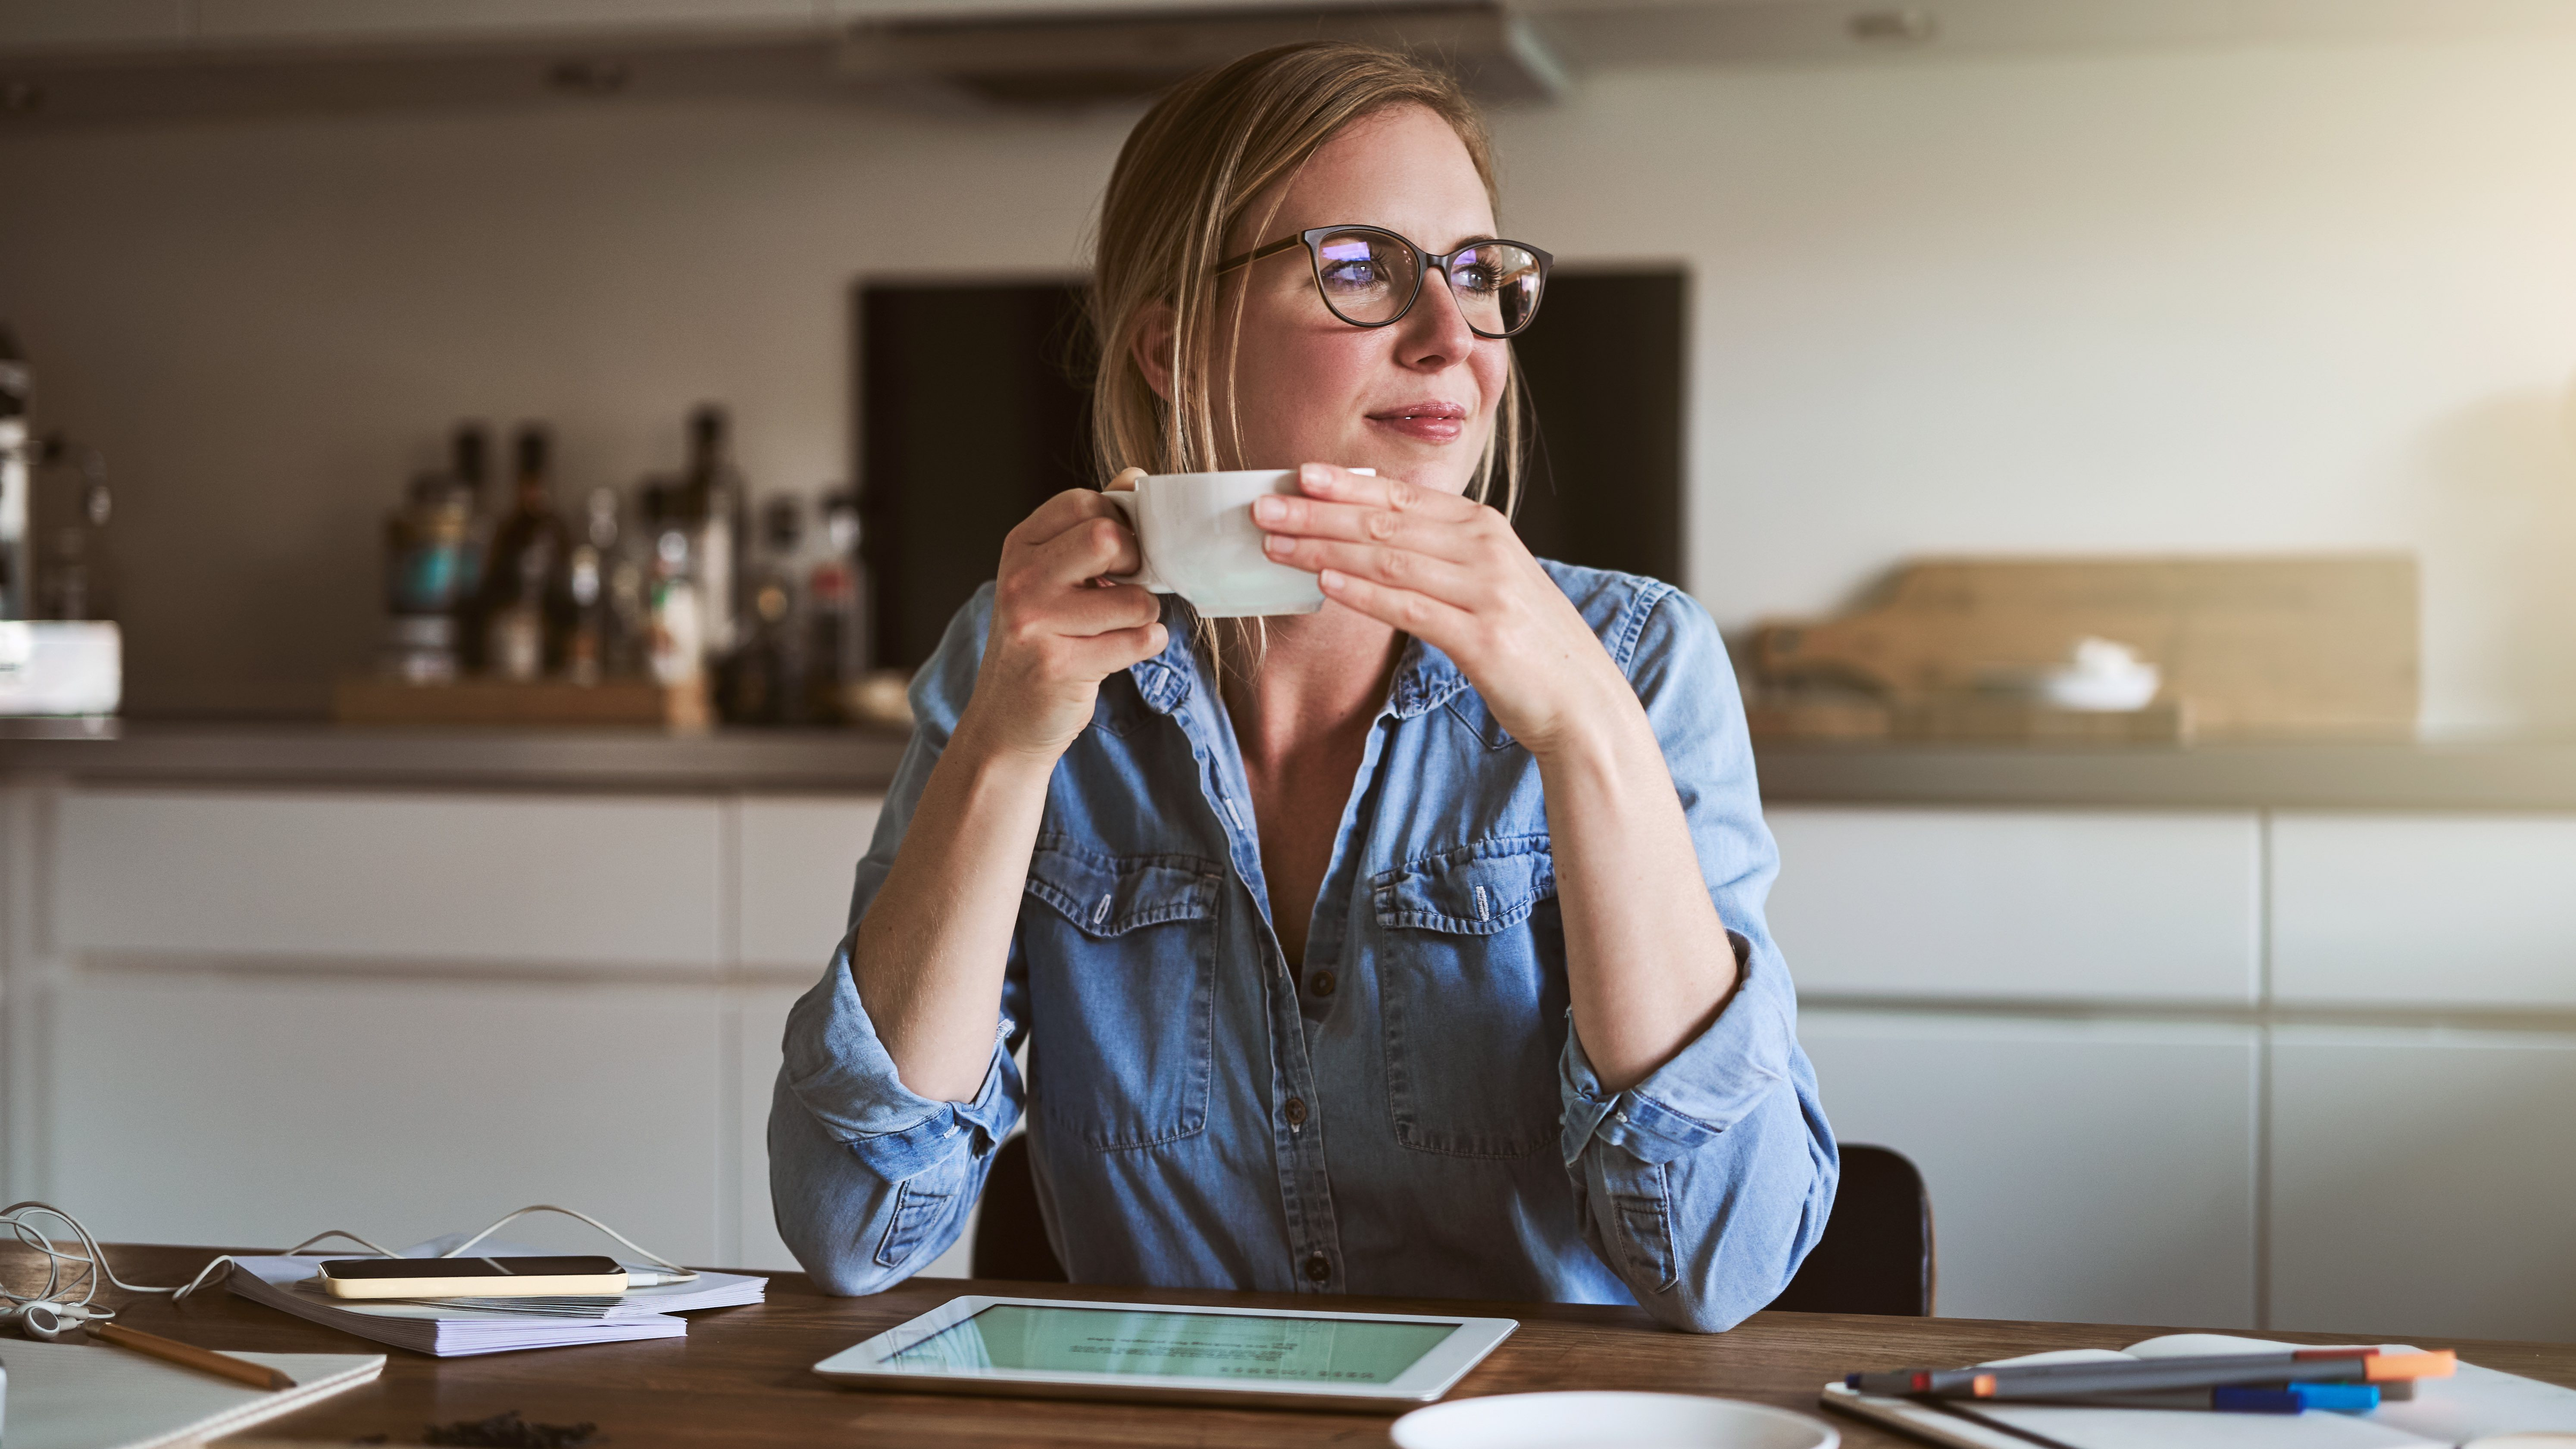 Woman sitting at home with documents and tablet, drinking a cup of tea and considering home ownership.